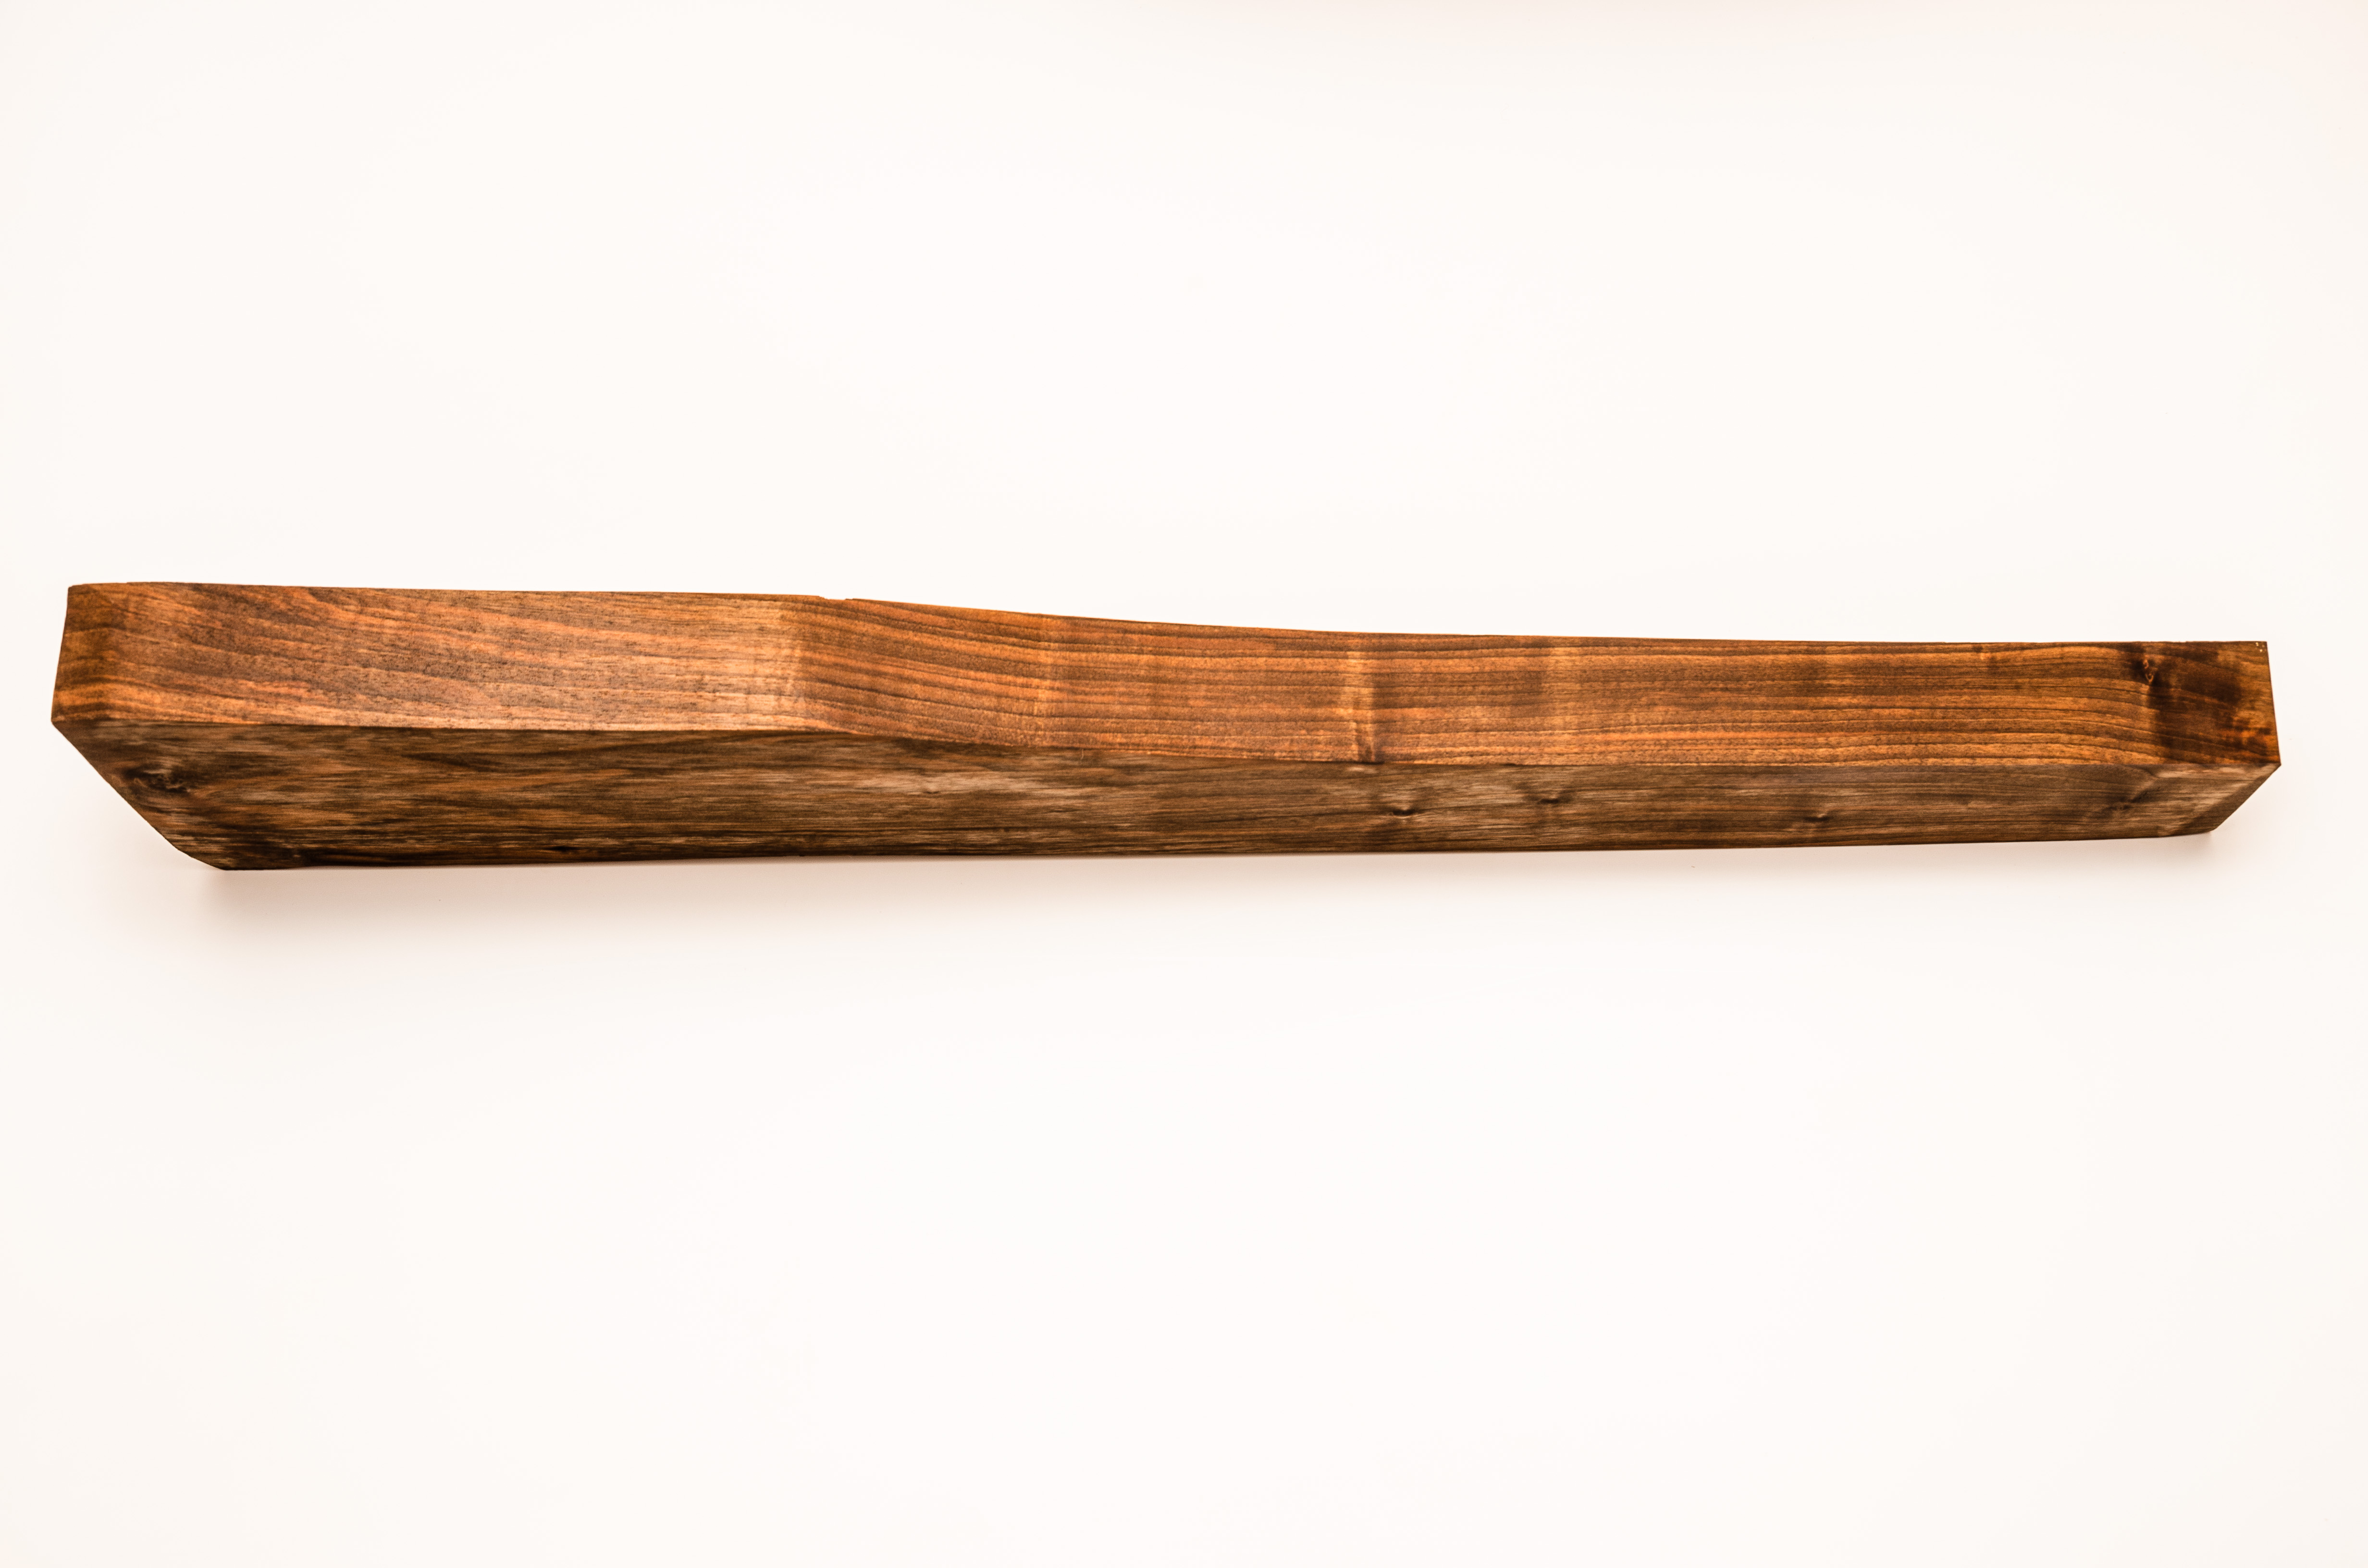 walnut_stock_blanks_for_guns_and_rifles-1592